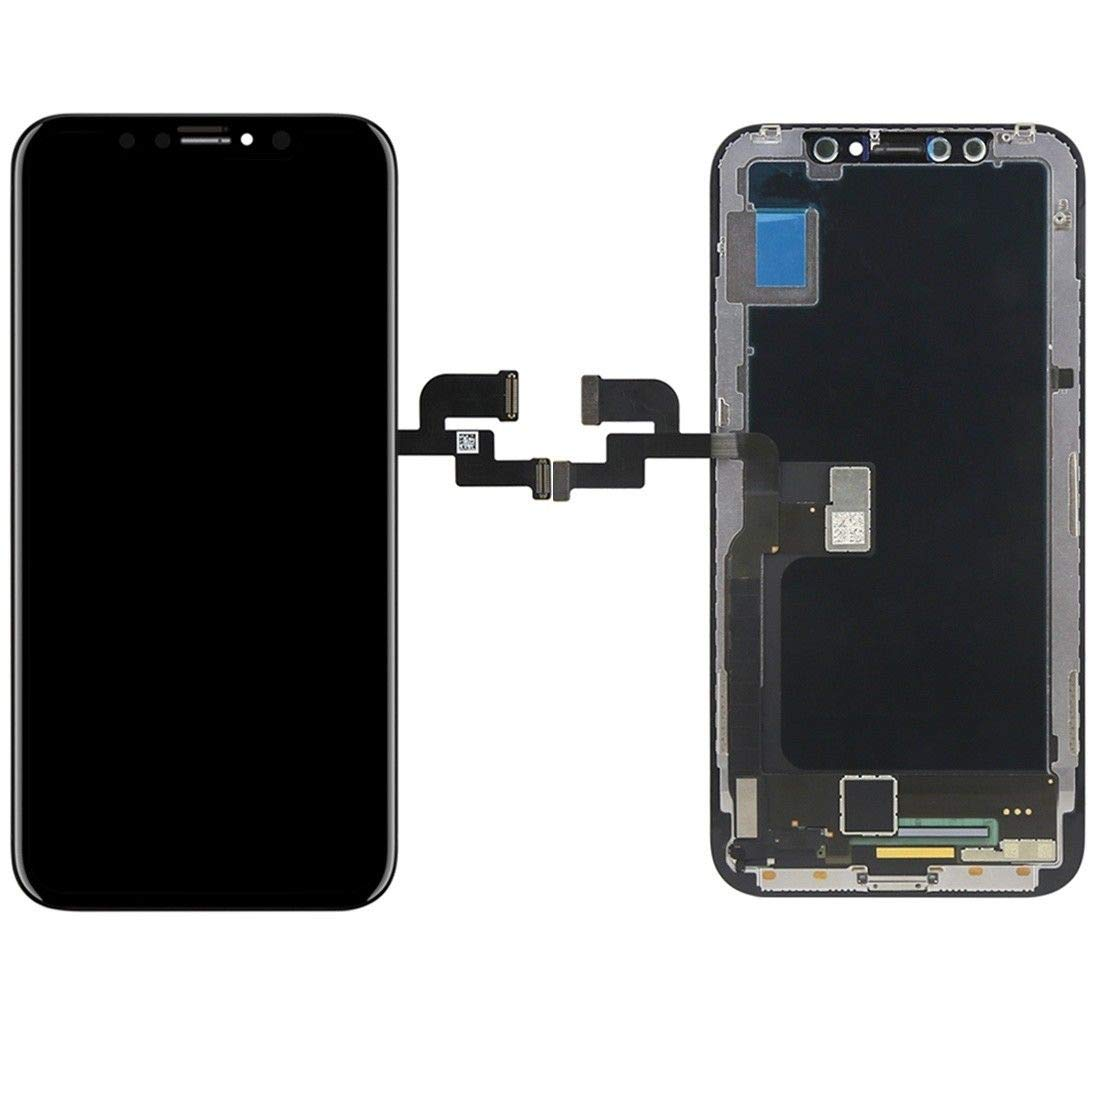 passionTR Screen Replacement fits iPhone X 5.8 inch Flexible OLED LCD Screen Display digitizer Assembly Full Complete Front Glass 3D Touch Screen (Black)